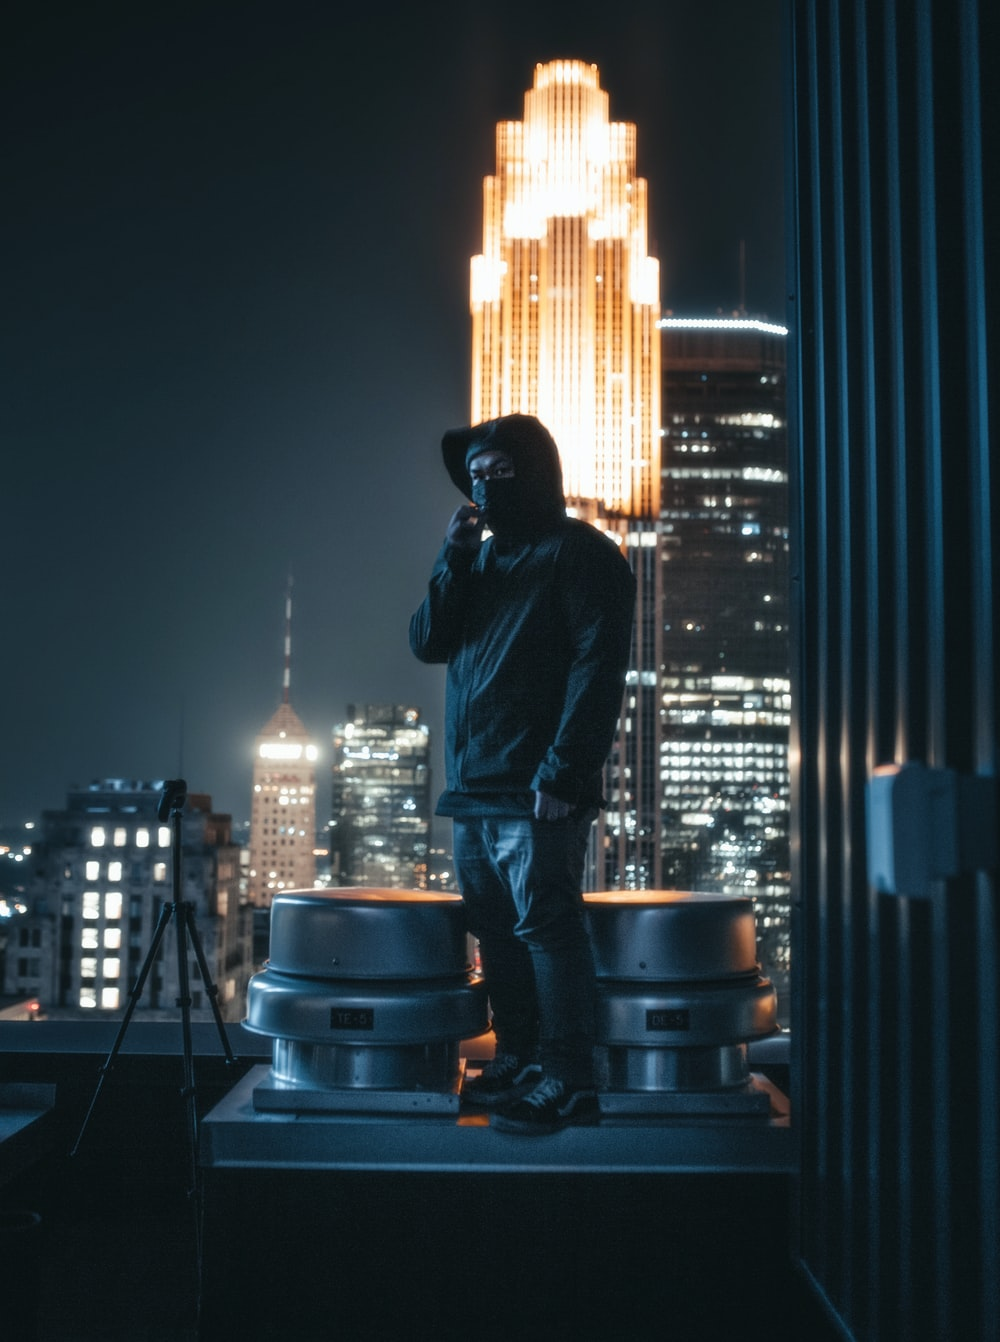 man in black jacket and blue denim jeans standing on black metal stand during night time